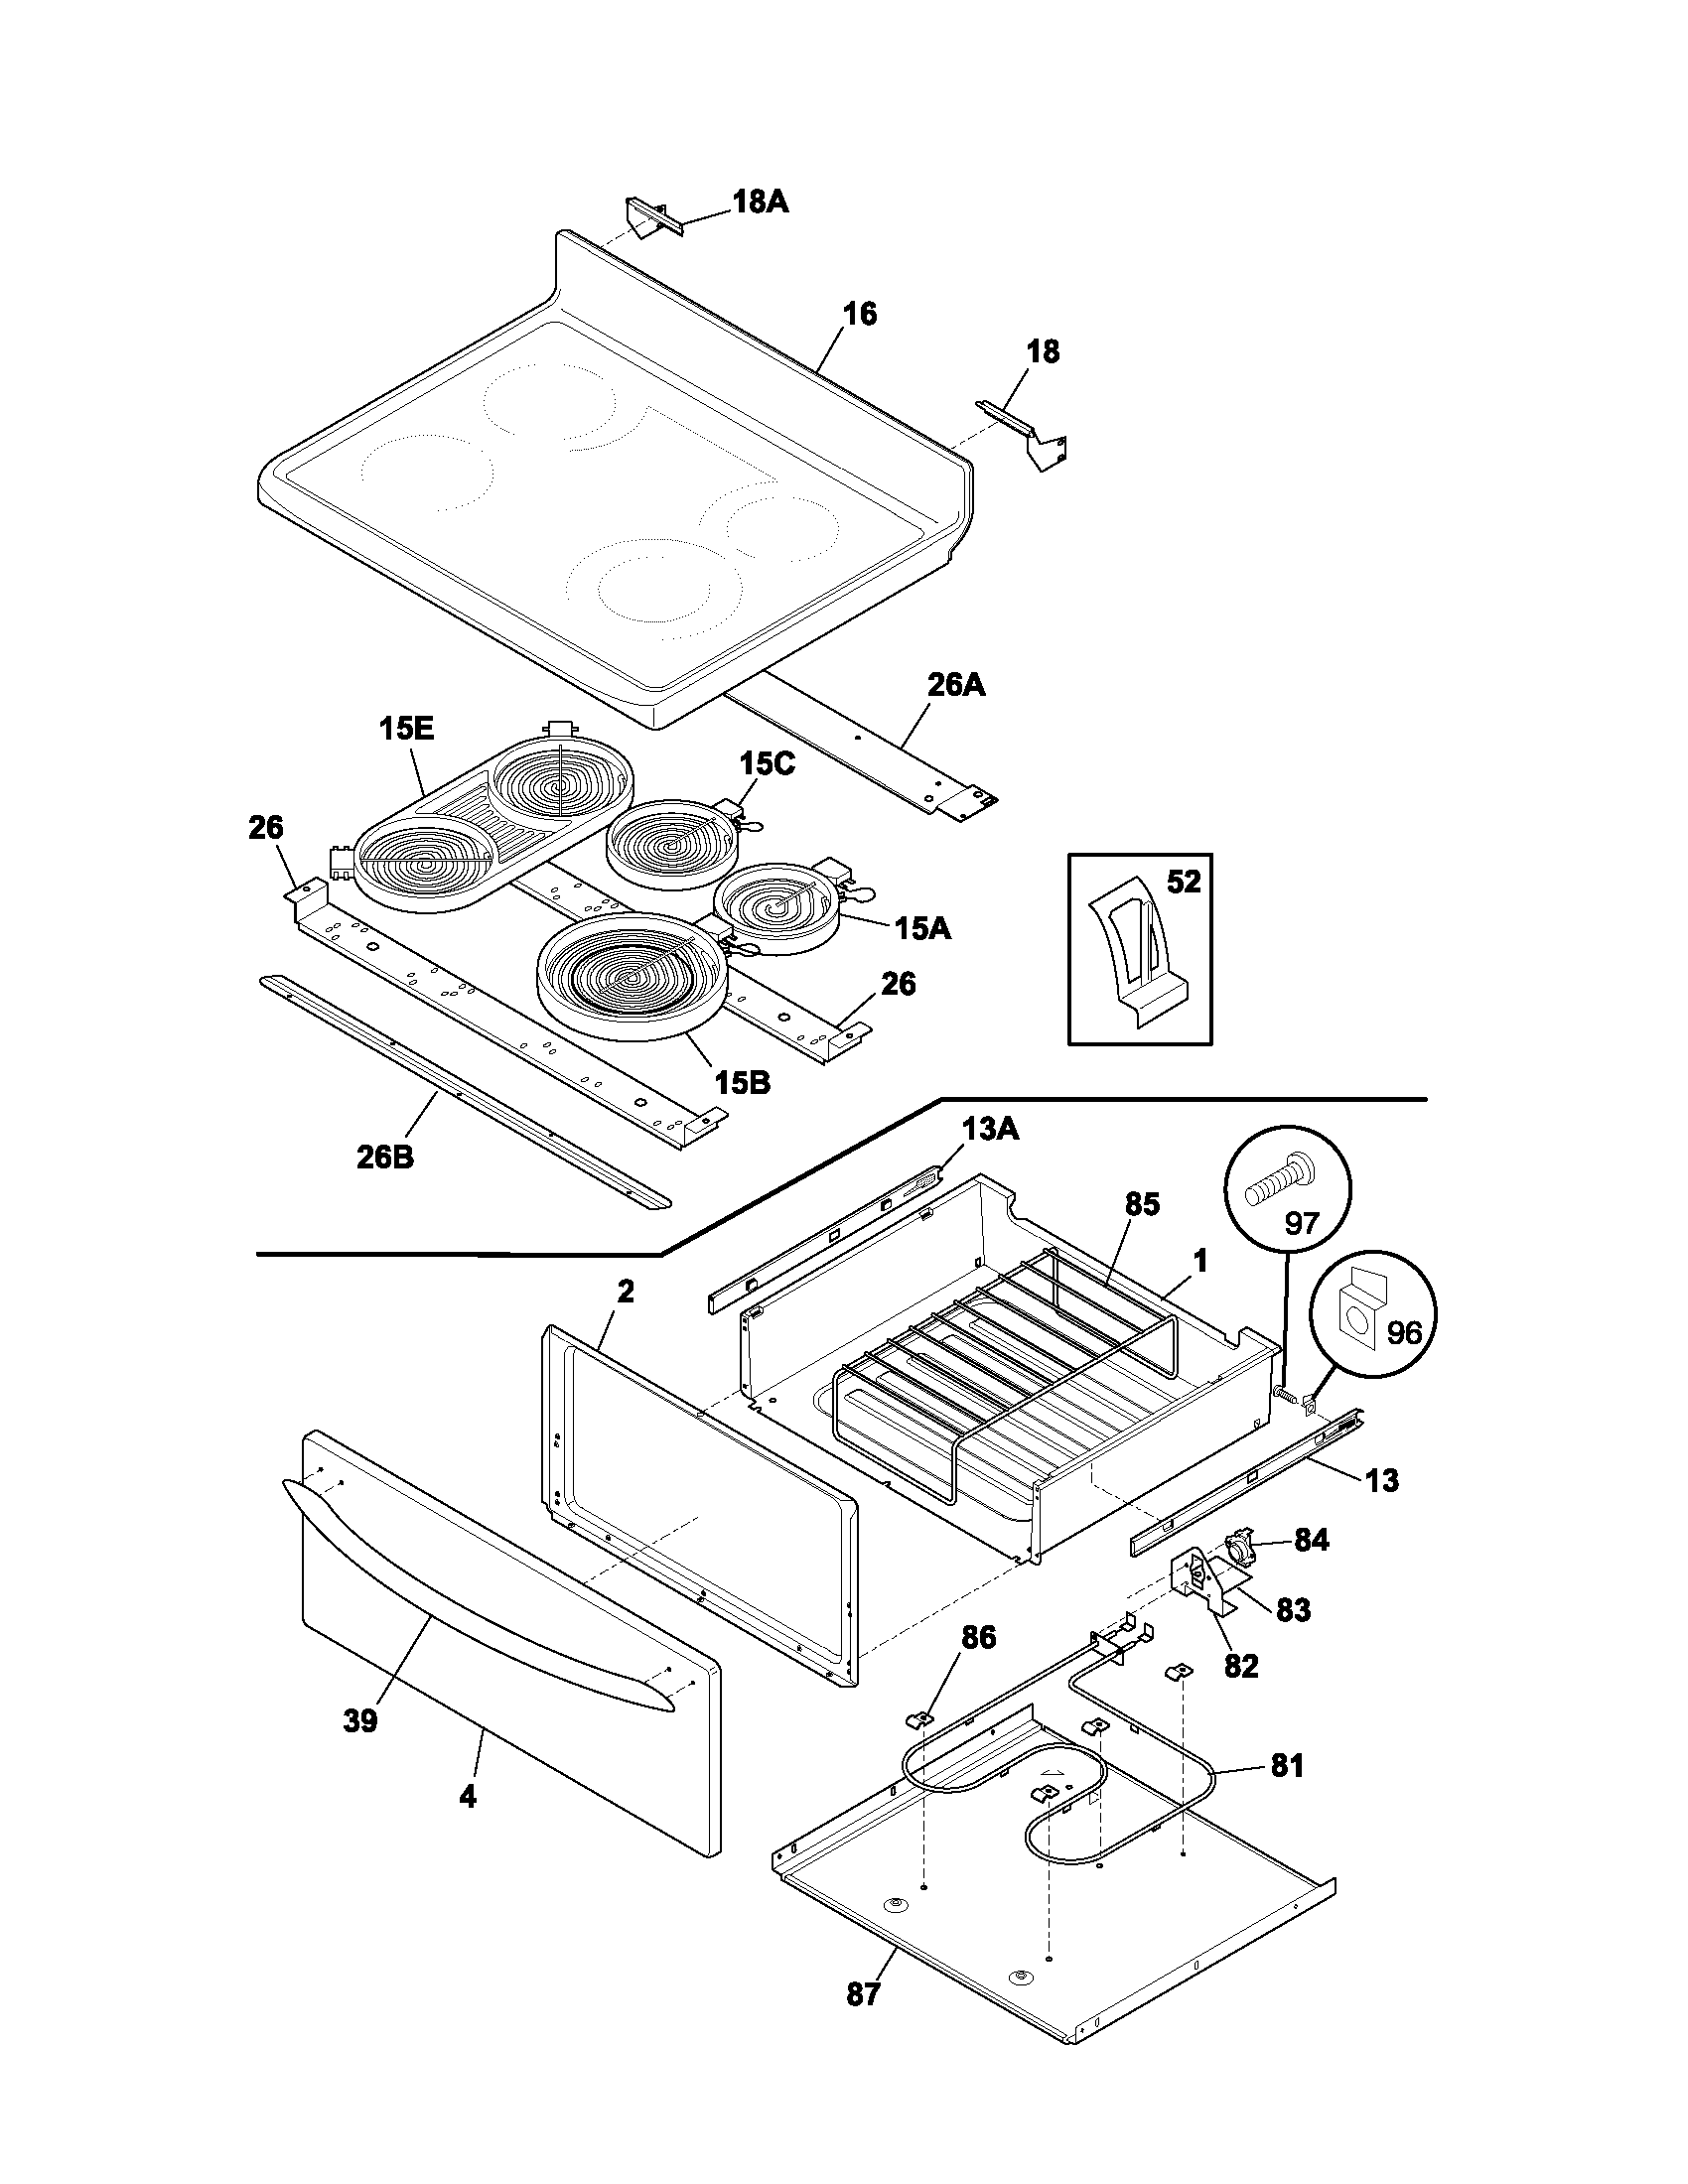 Plef398ccc electric range top drawer parts diagram